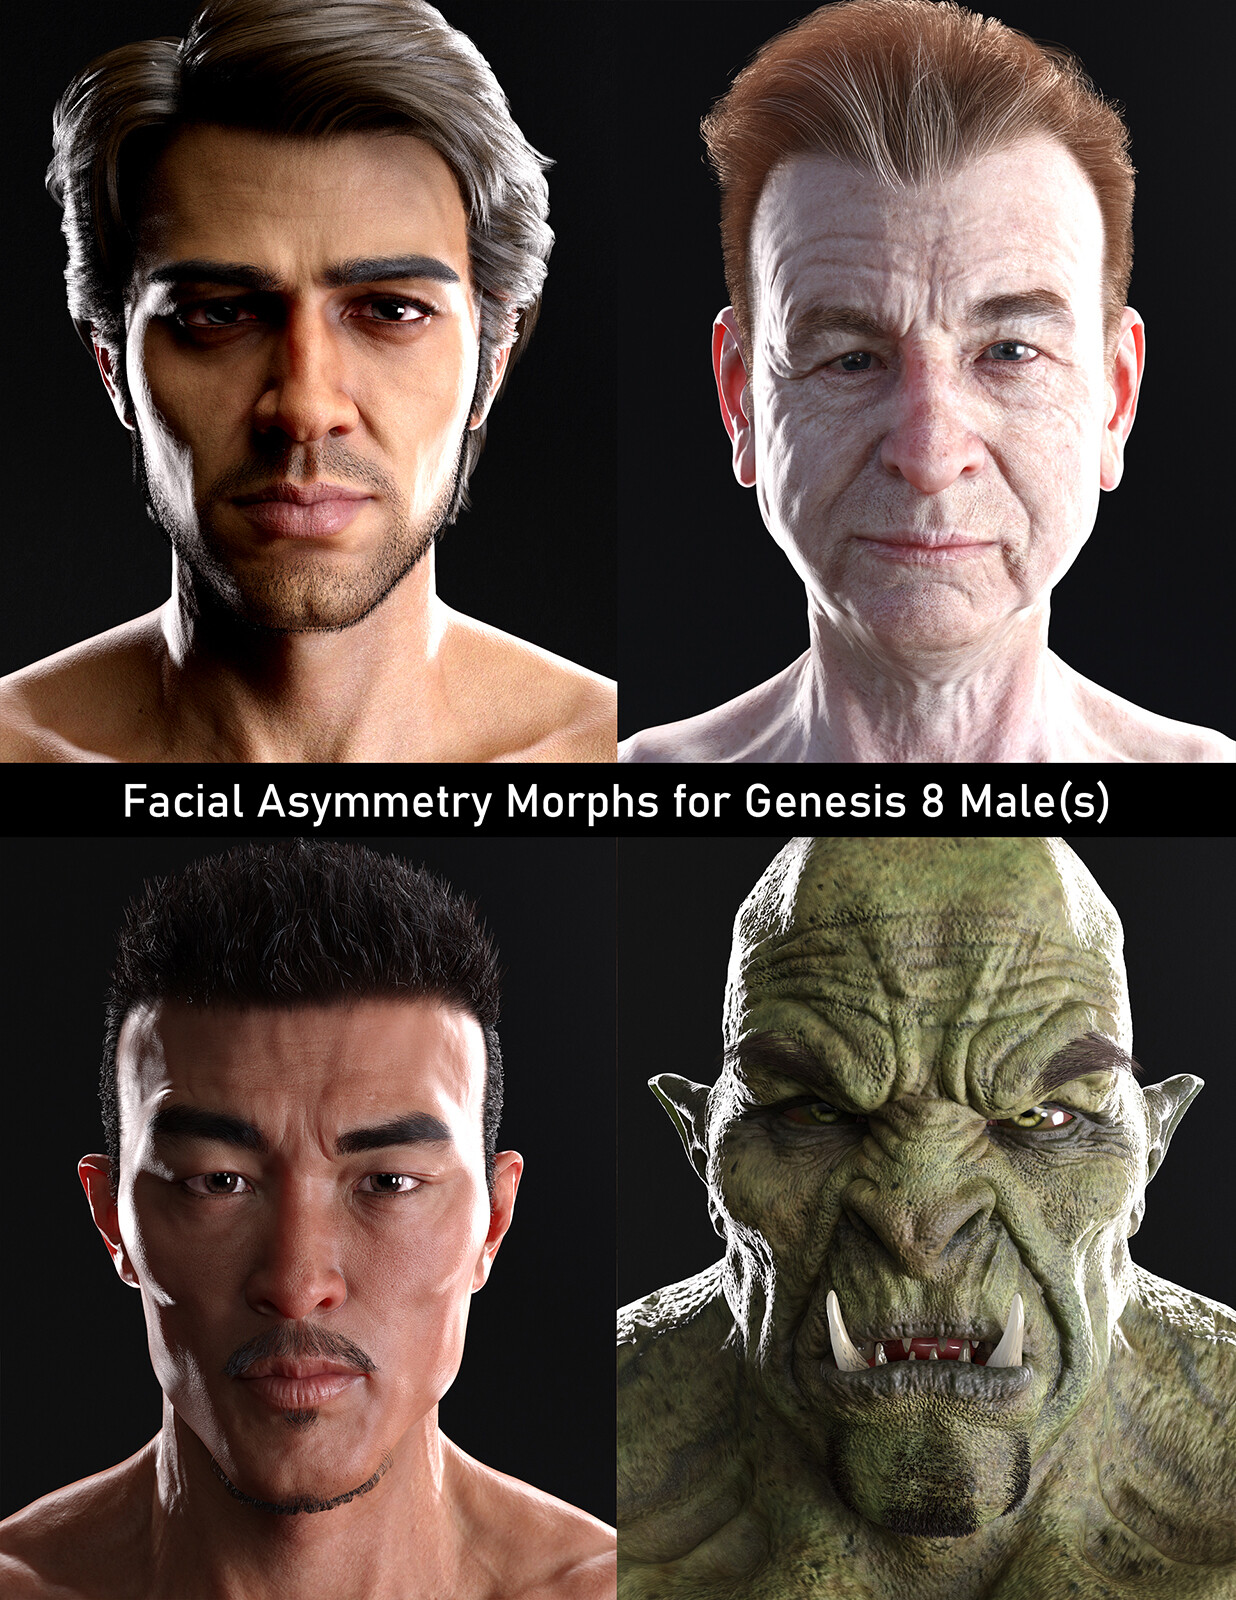 MK Facial Asymmetry Morphs for Genesis 8 Male(s)